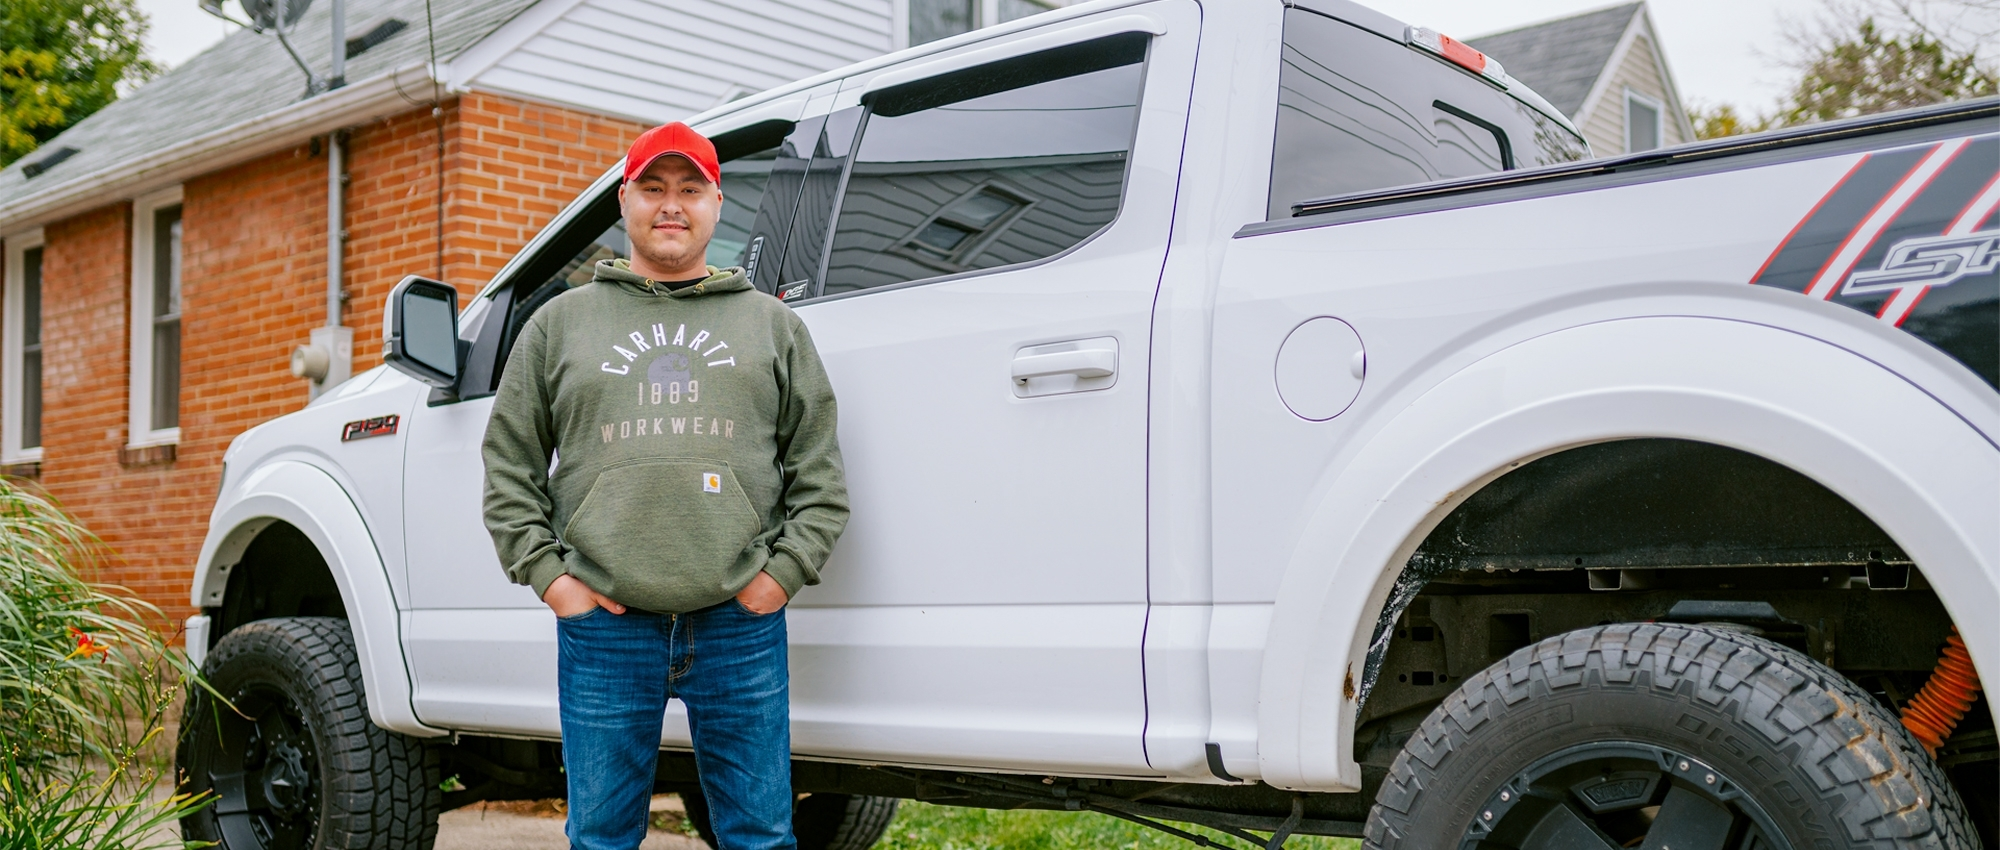 Scott Monds of Dundas, Ont. stands in front of his truck. He has received two stem cell transplants from a single stem cell donor.